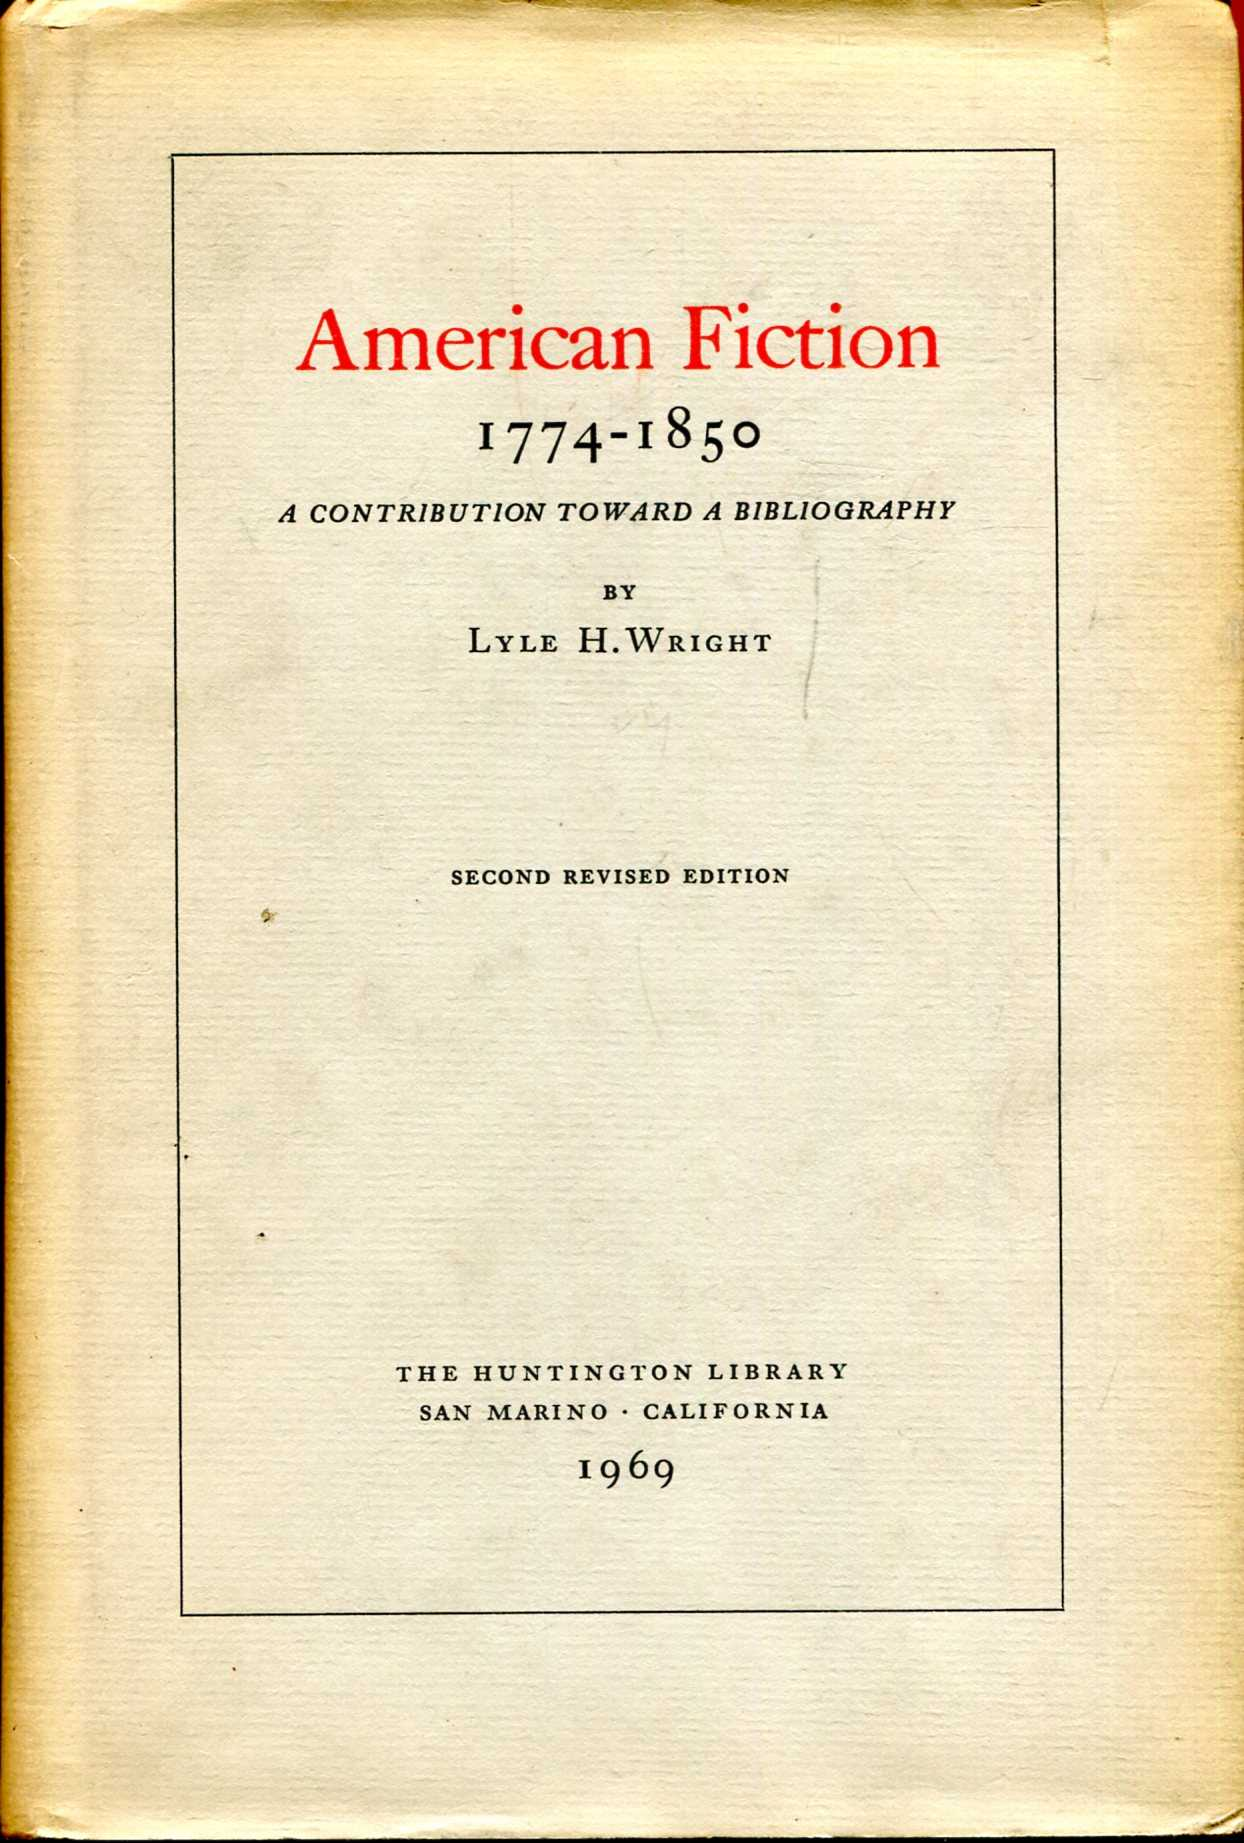 Image for American Fiction 1774-1850 : a contribution toward a bibliography